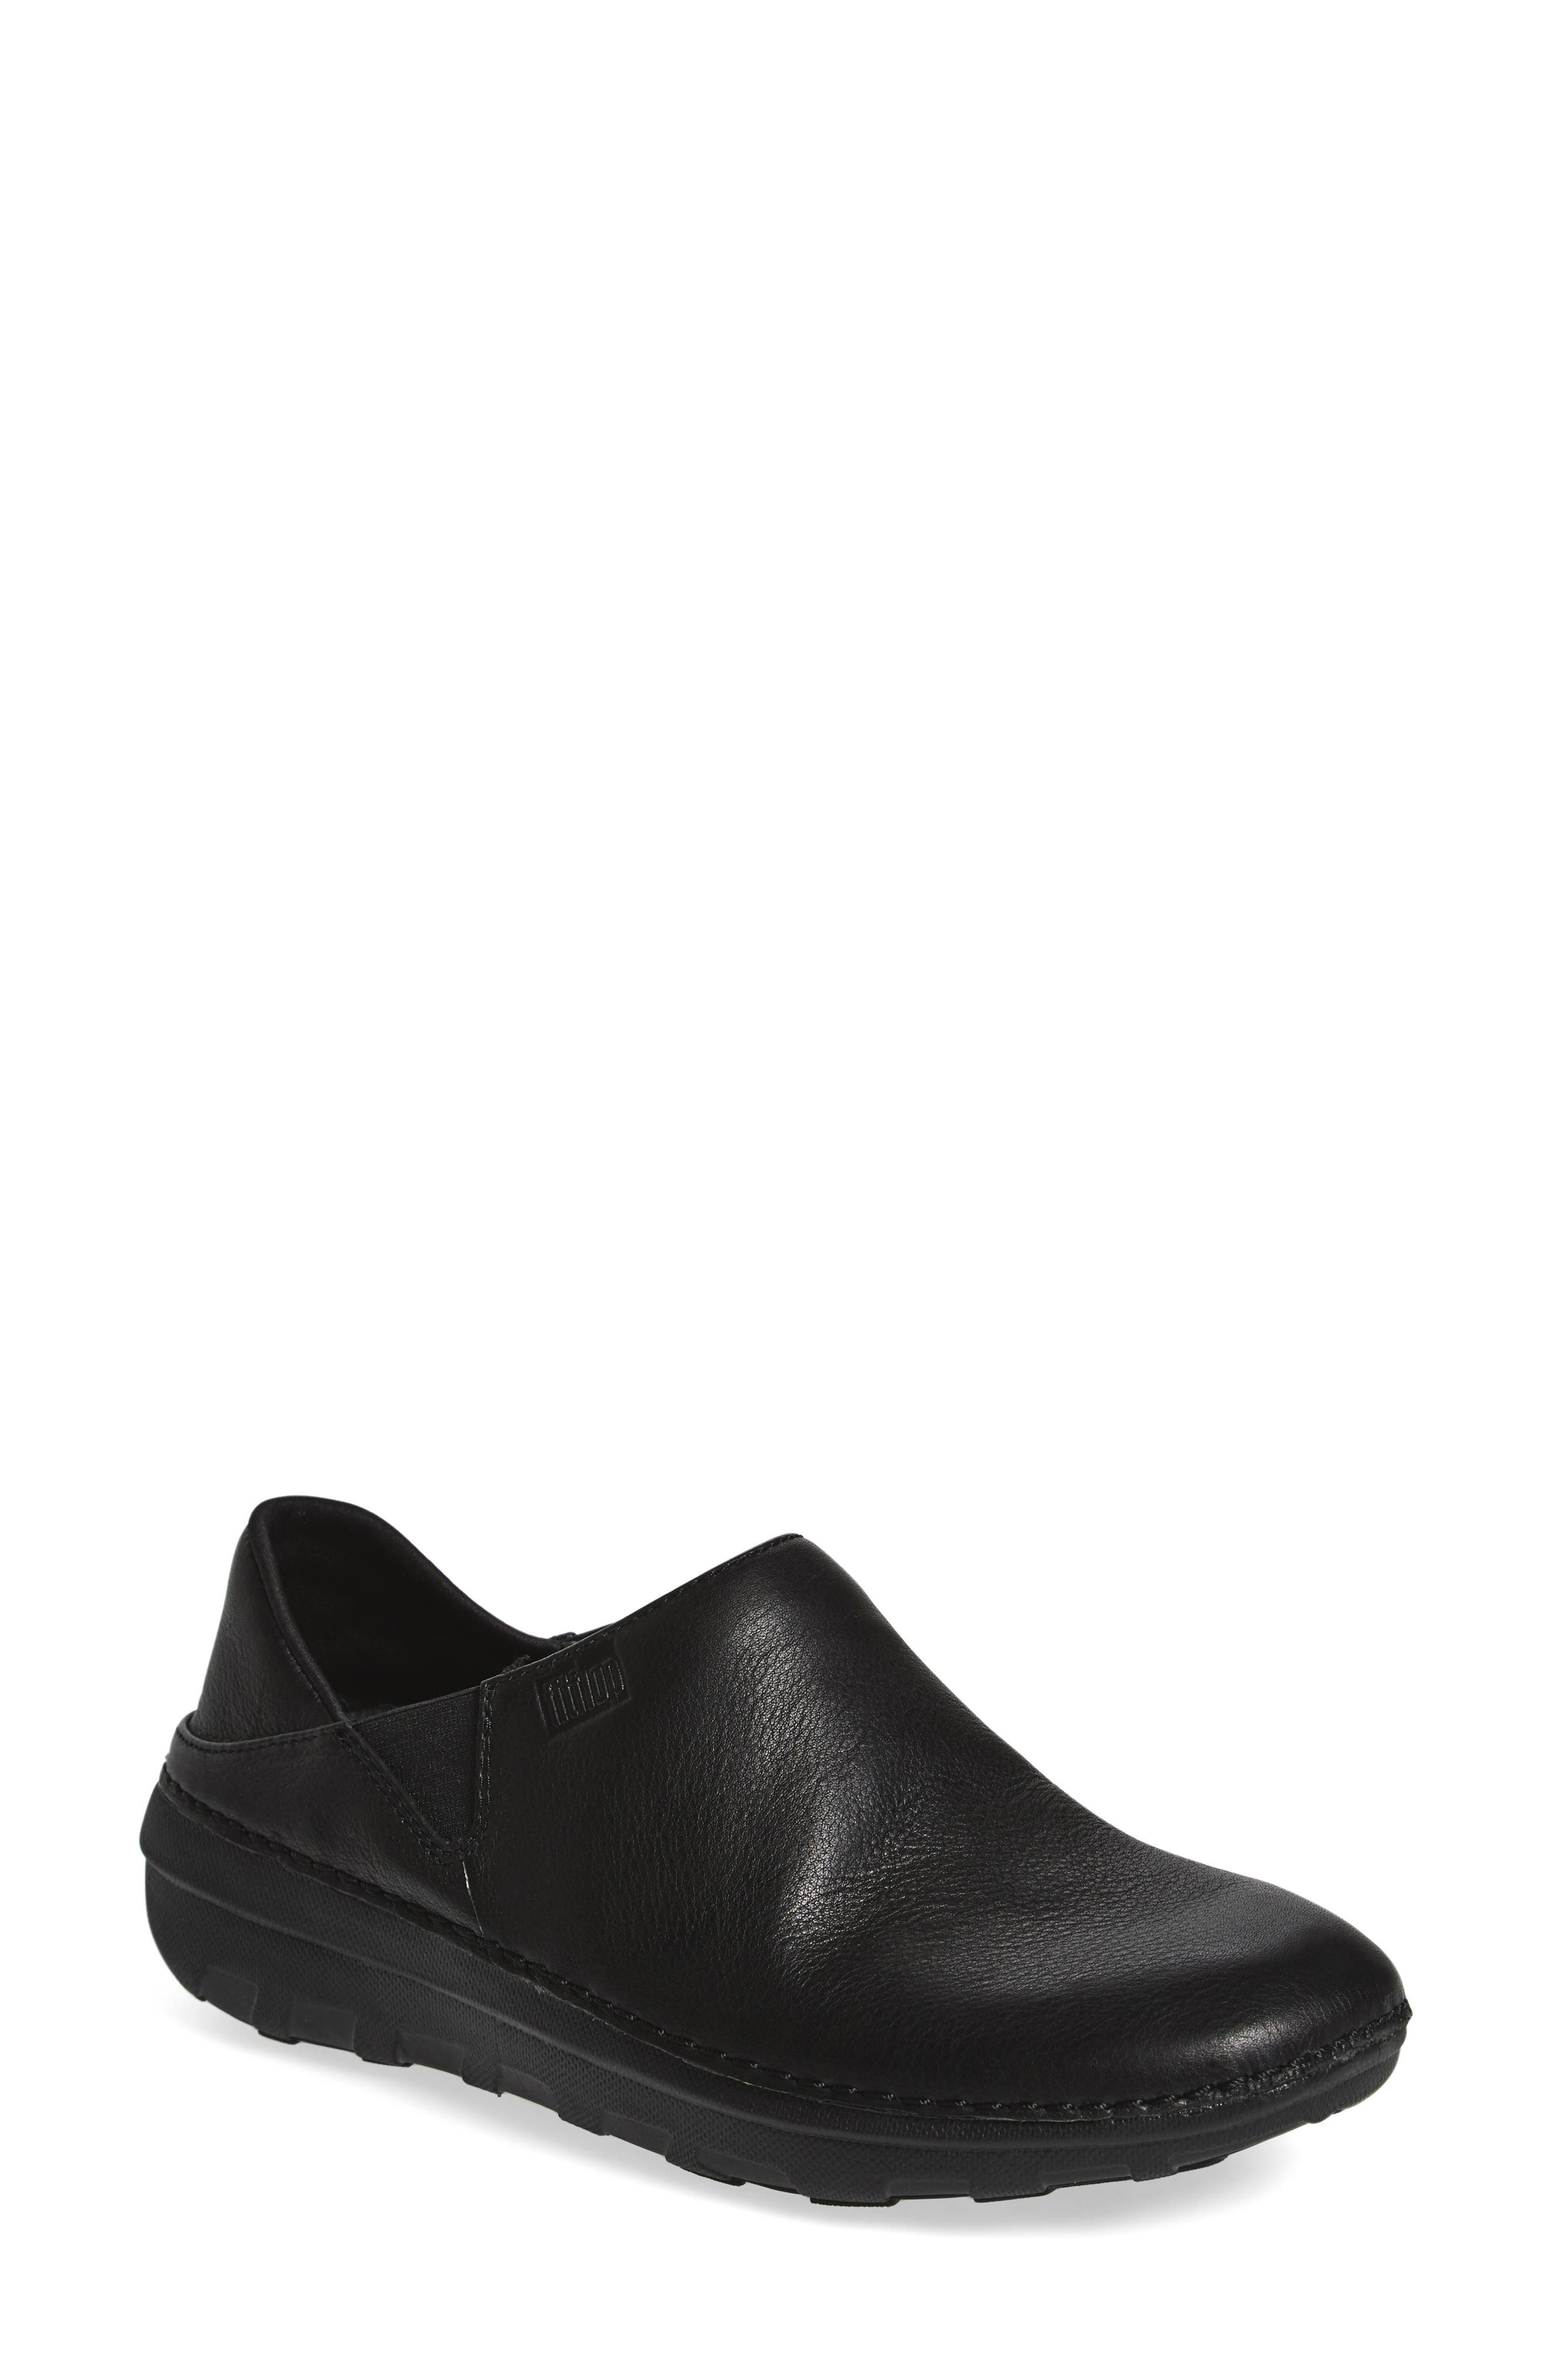 Superloafer Flat,                         Main,                         color, All Black Leather